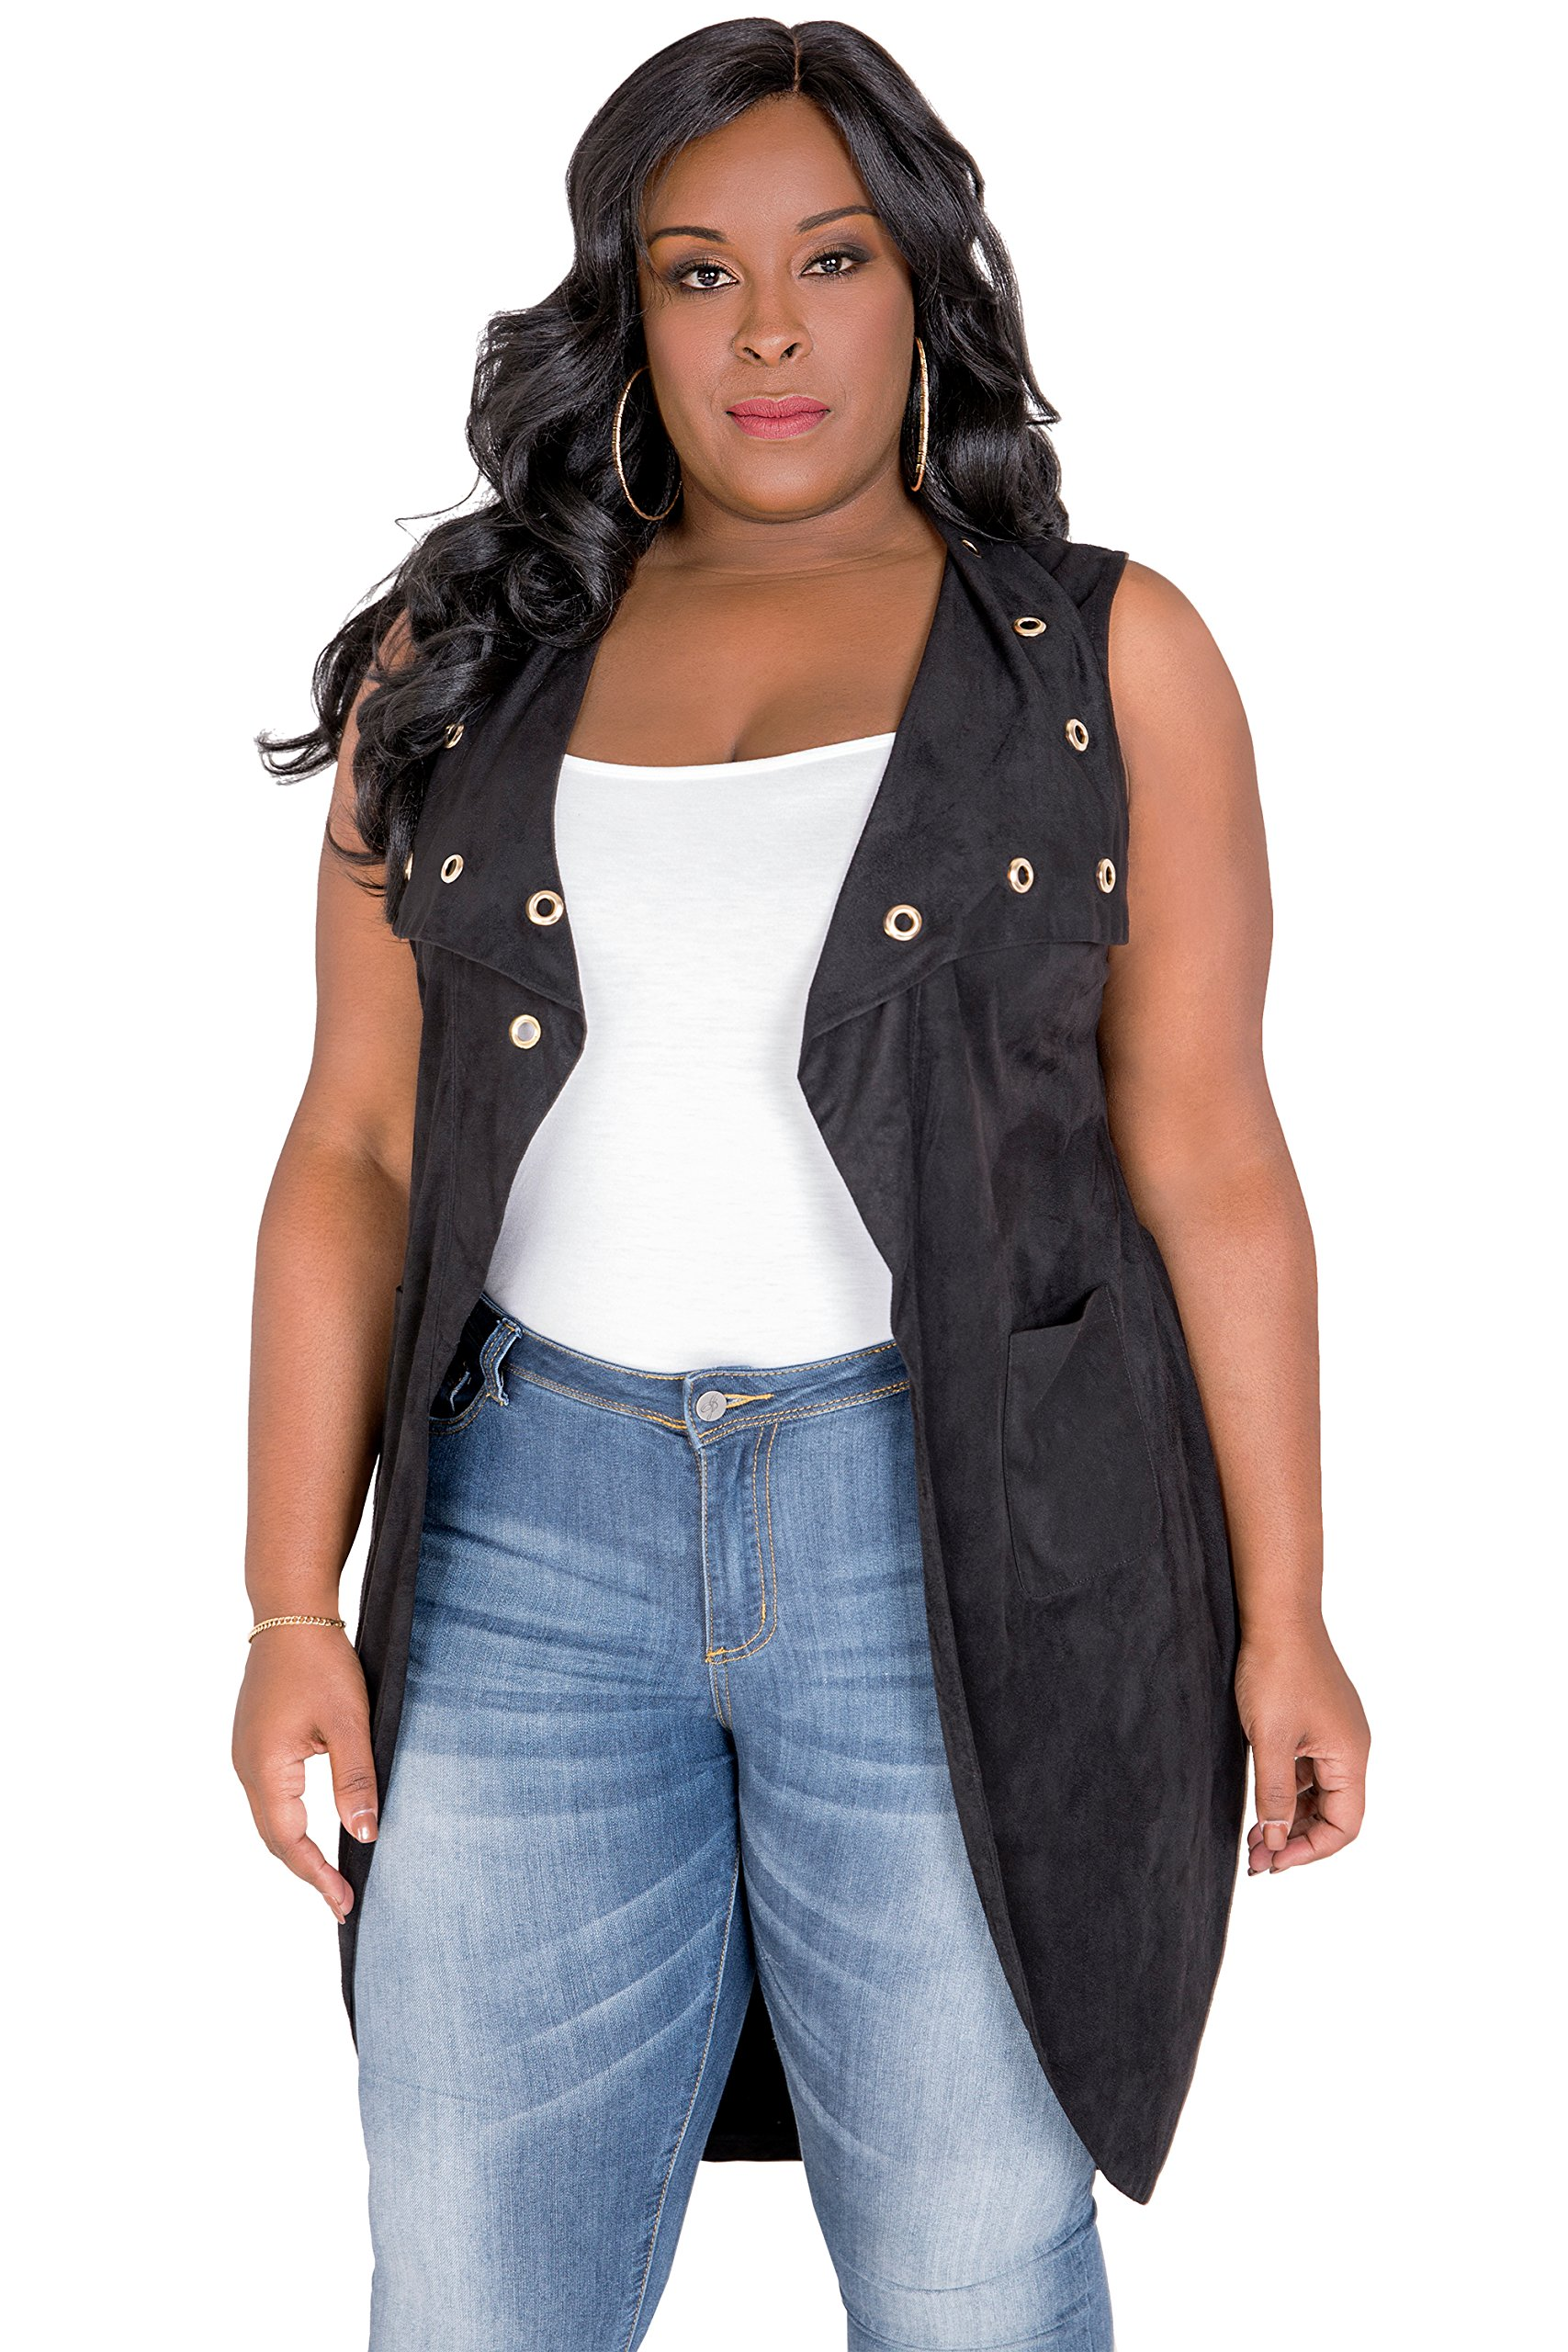 Poetic Justice Plus Size Women's Curvy Fit Black Suede Sleeveless Grommet Lapel Duster Coat Size 2X